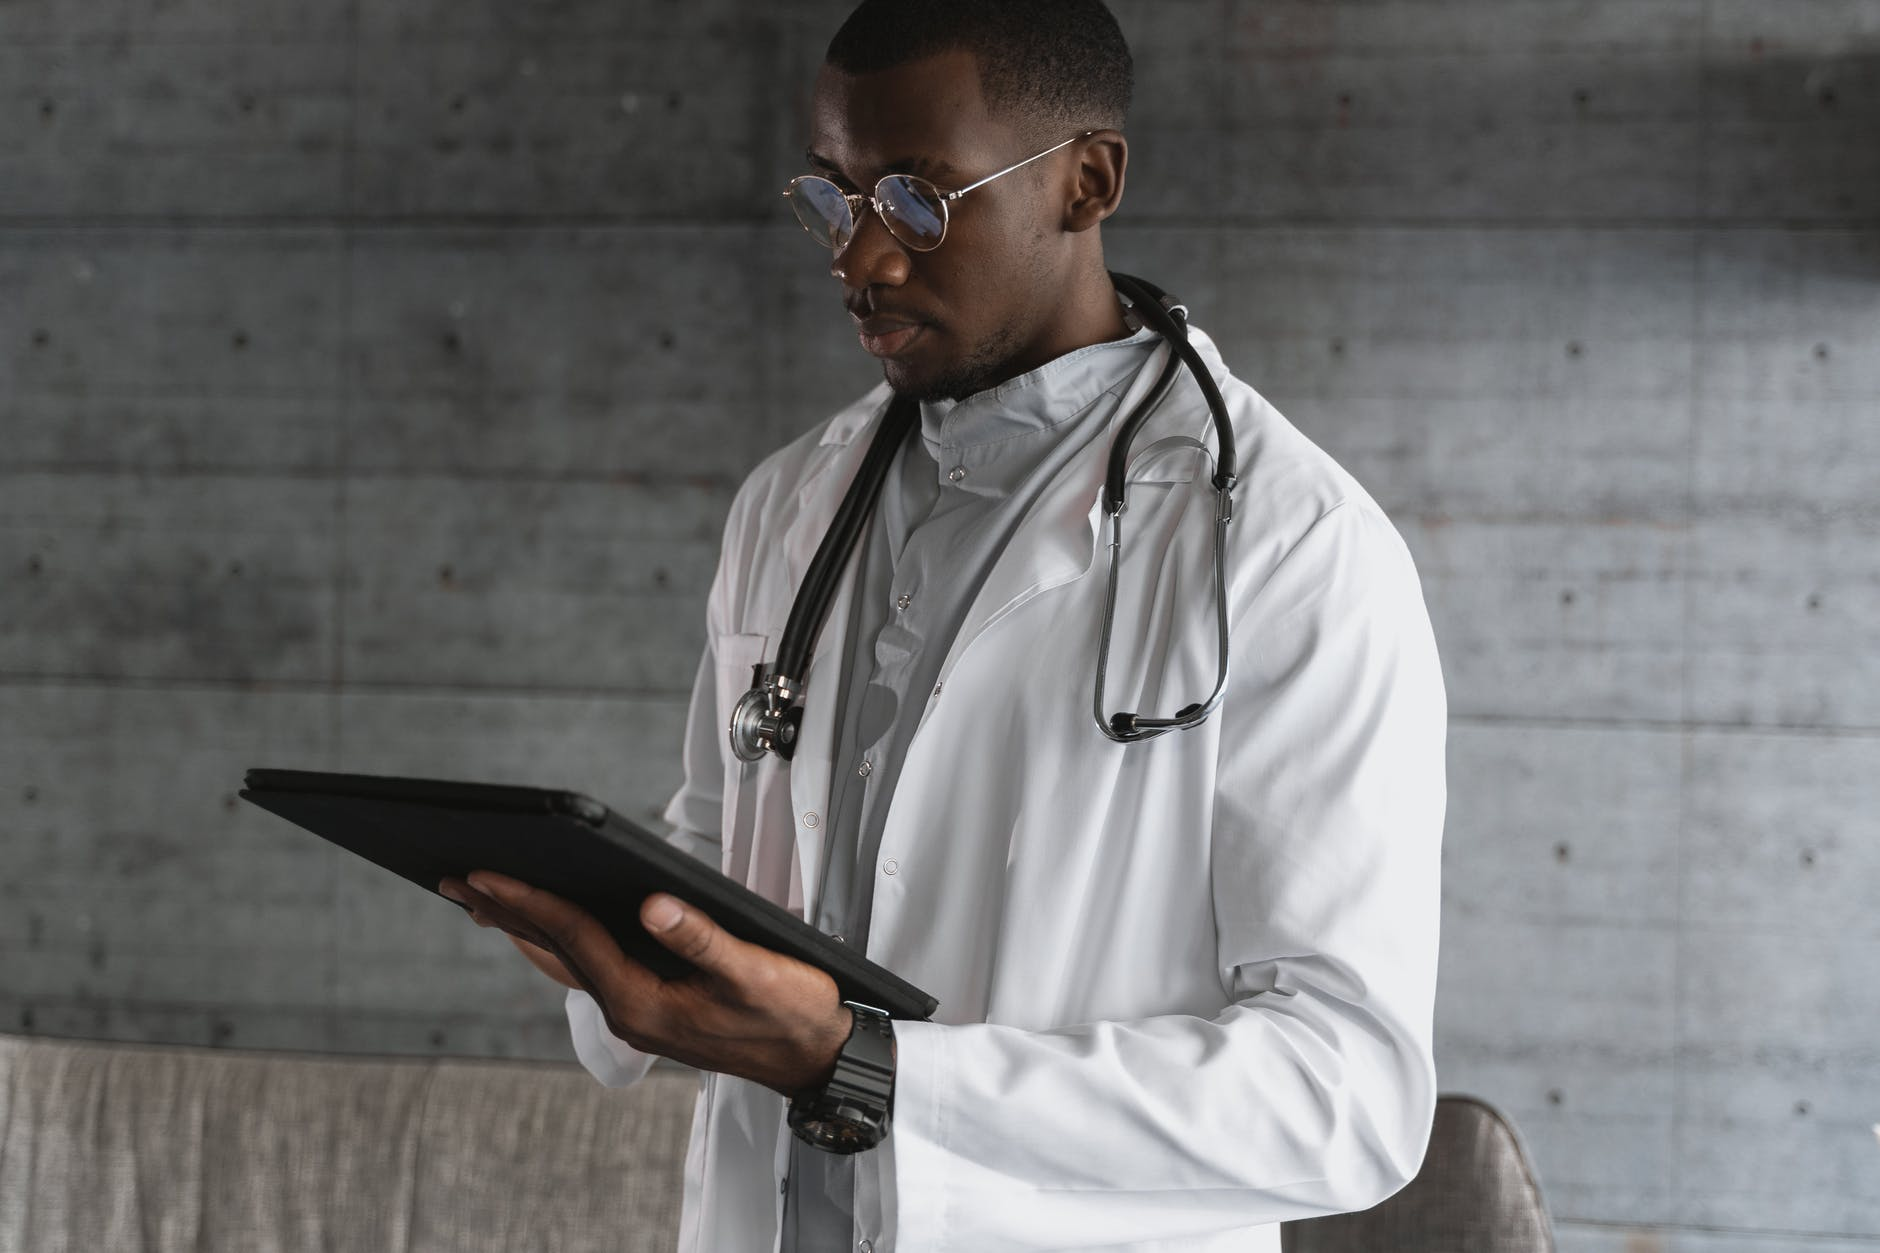 A doctor holding the black tablet. | Photo: Pexels